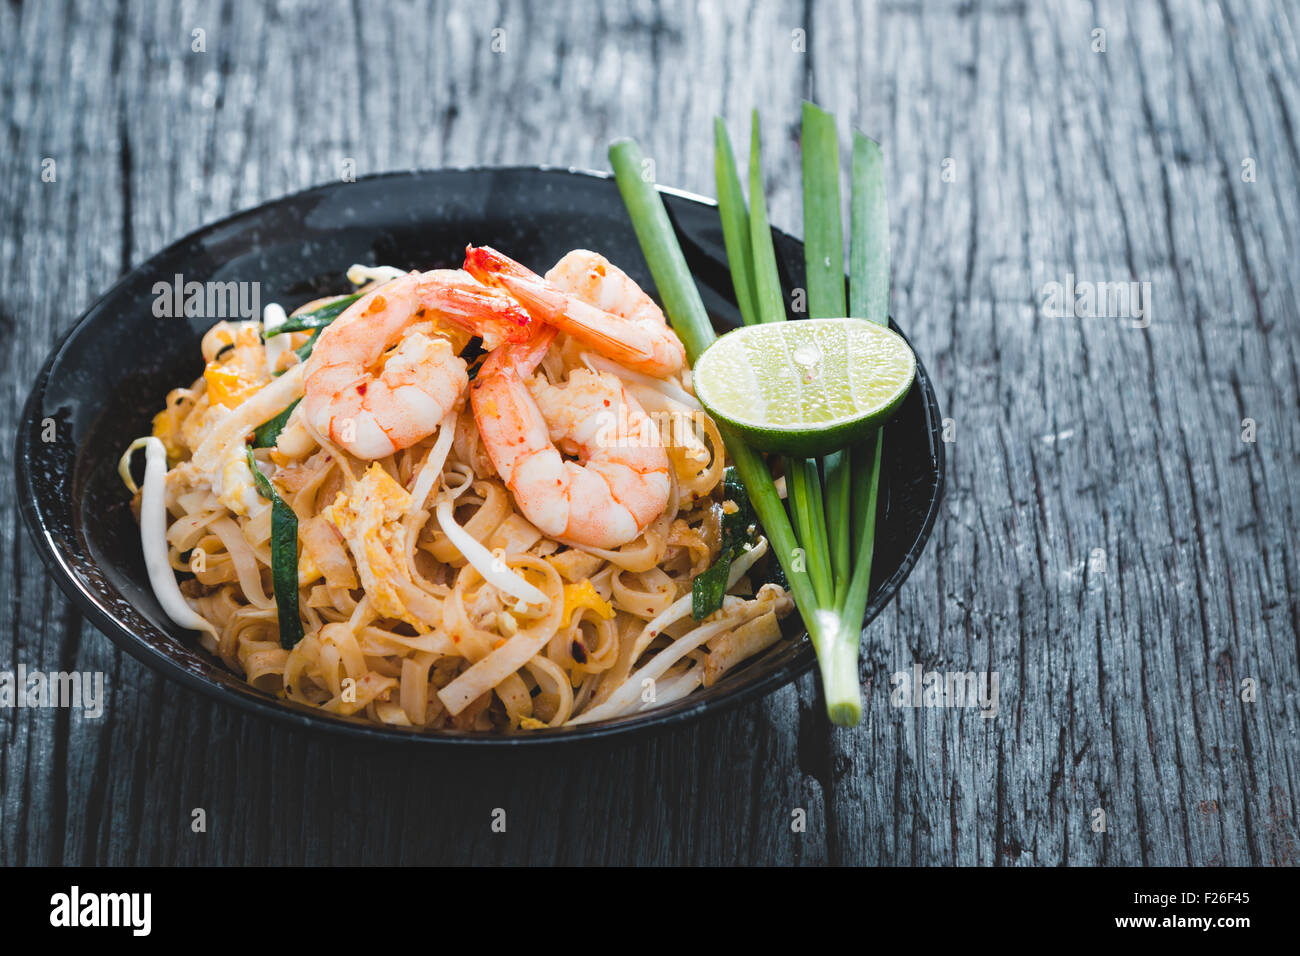 Thai Fried Noodles 'Pad Thai' with shrimp and vegetables - Stock Image